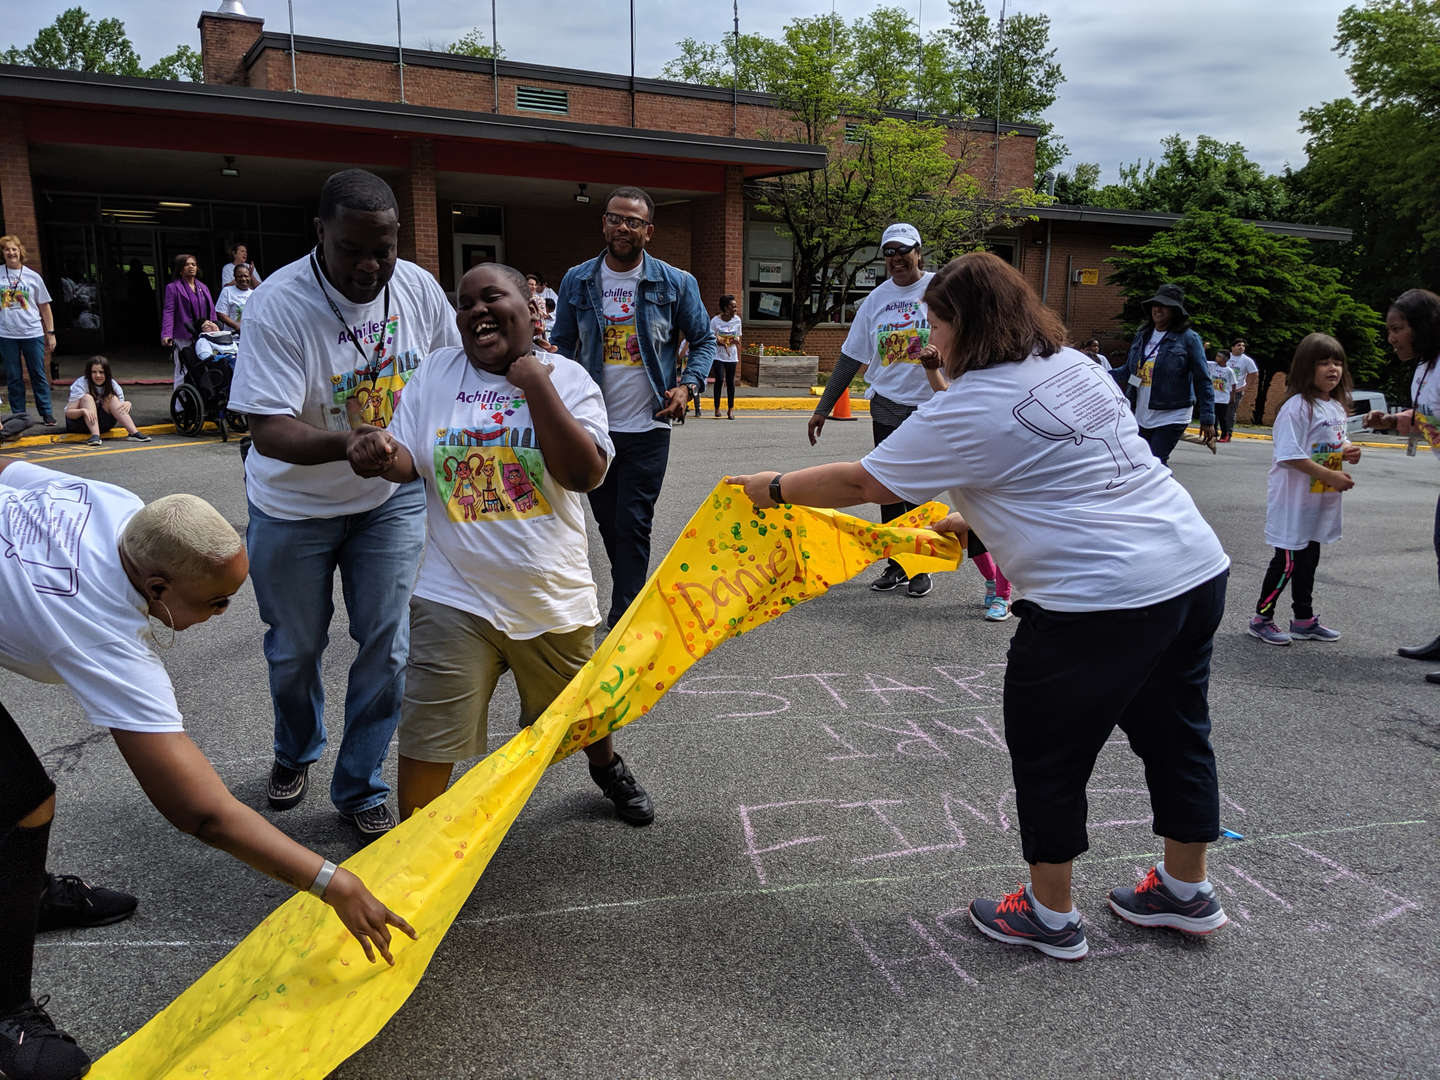 A student breaks  the banner crossing  the finish line.